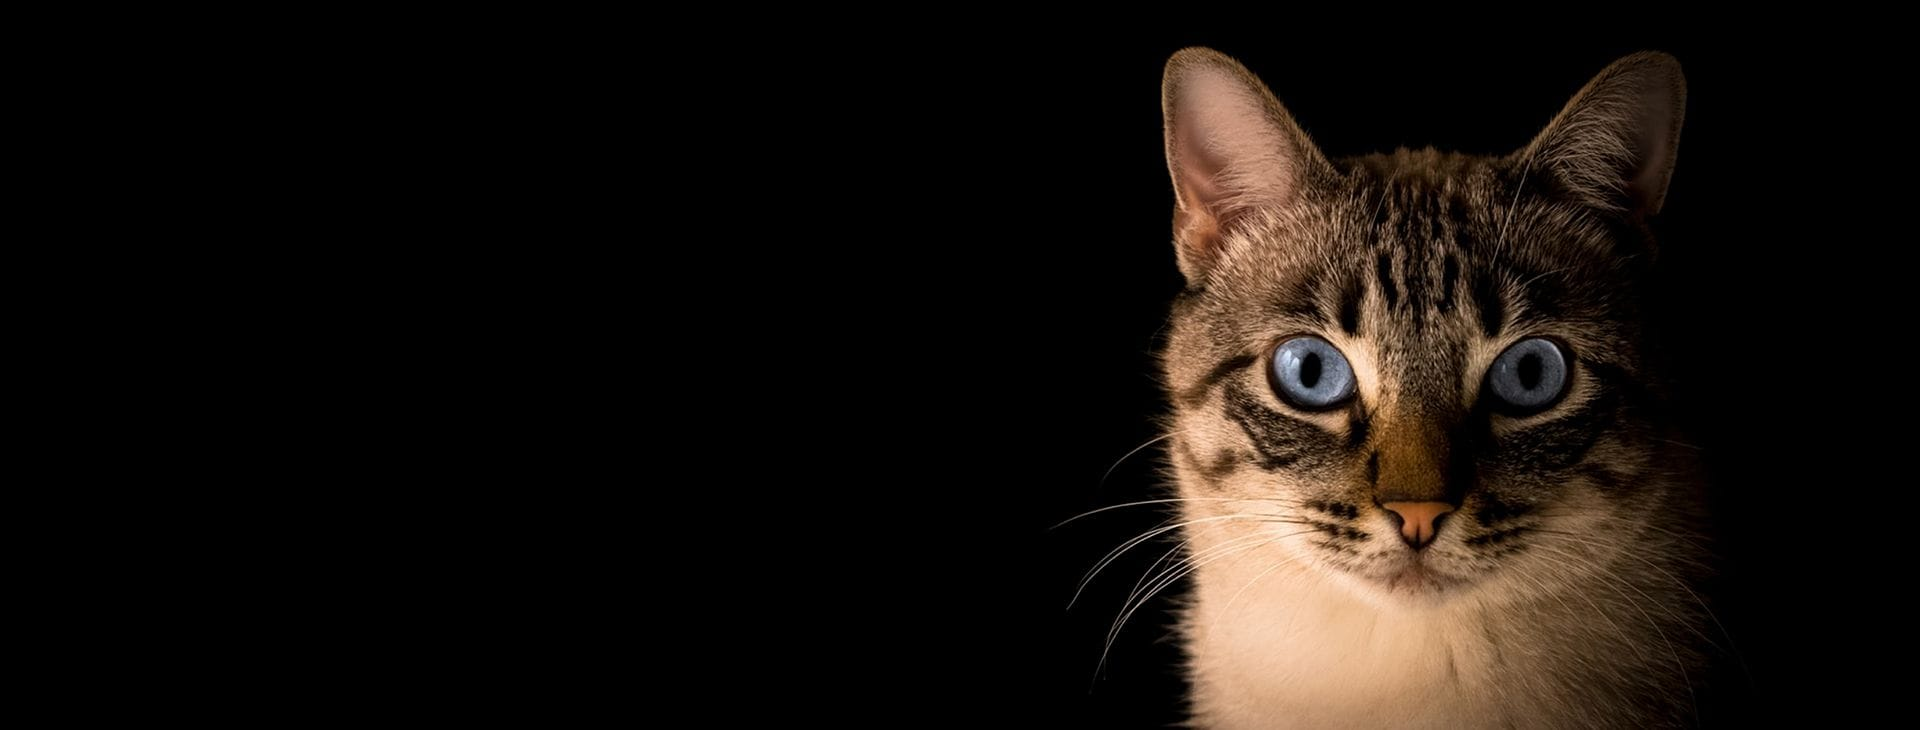 Cat Specialist Services | Specialist veterinary care just for cats